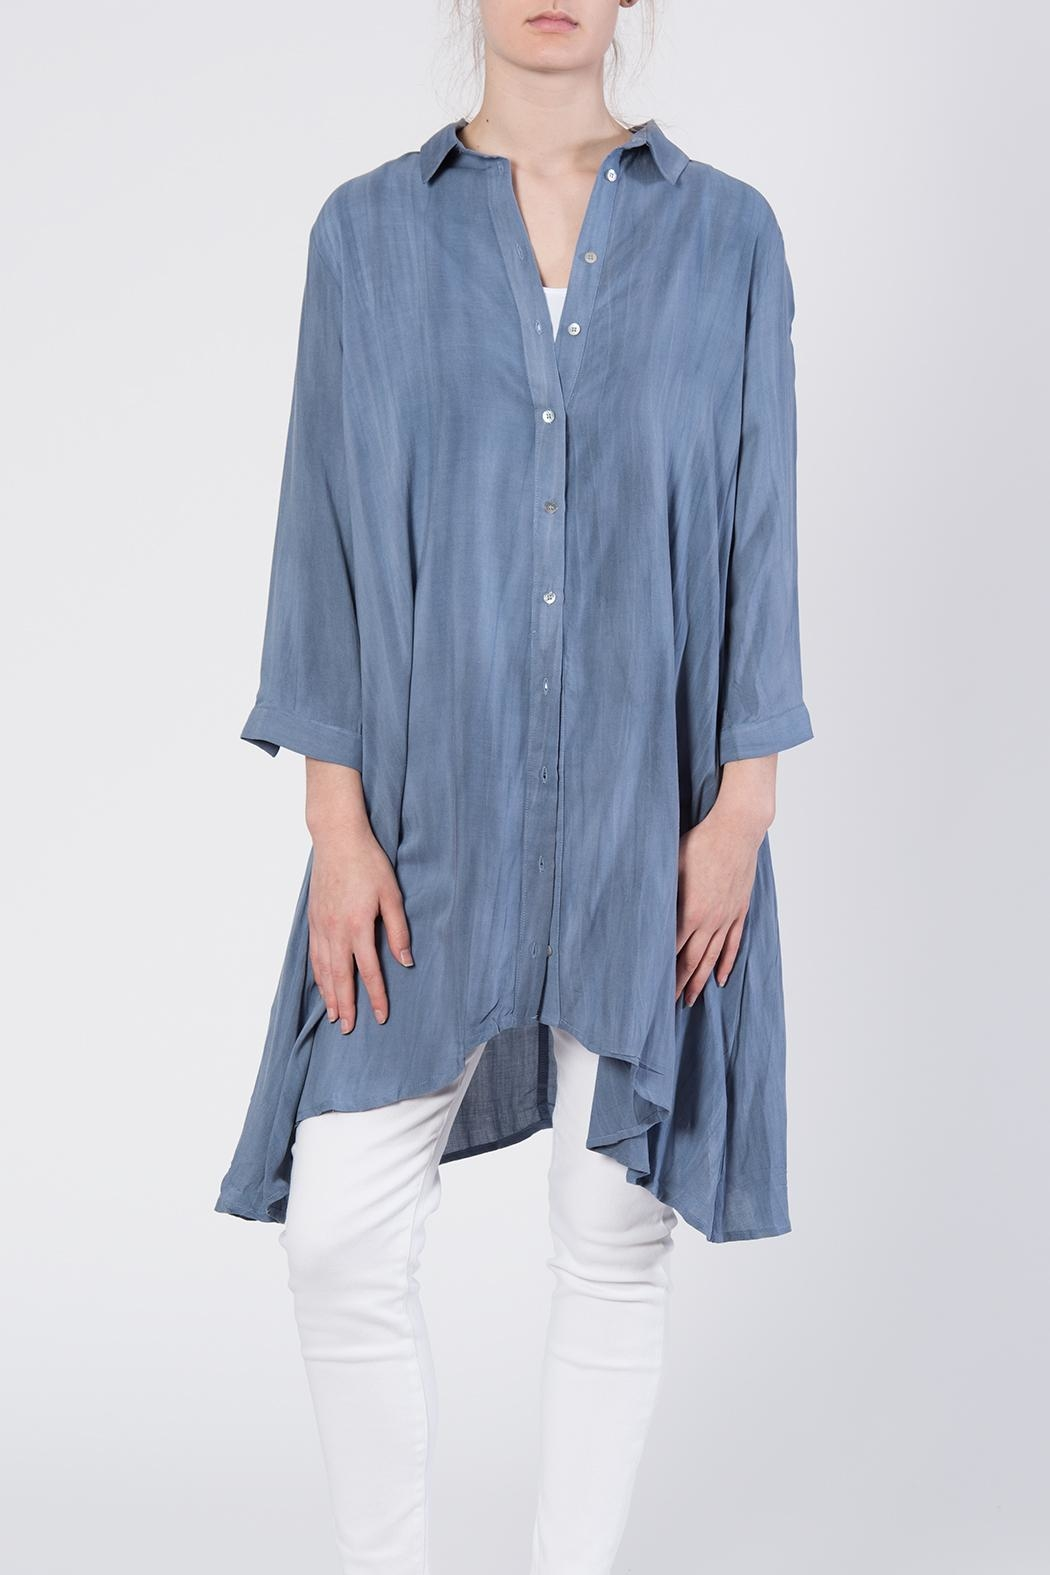 annabelle Button Front Tunic Top - Front Full Image